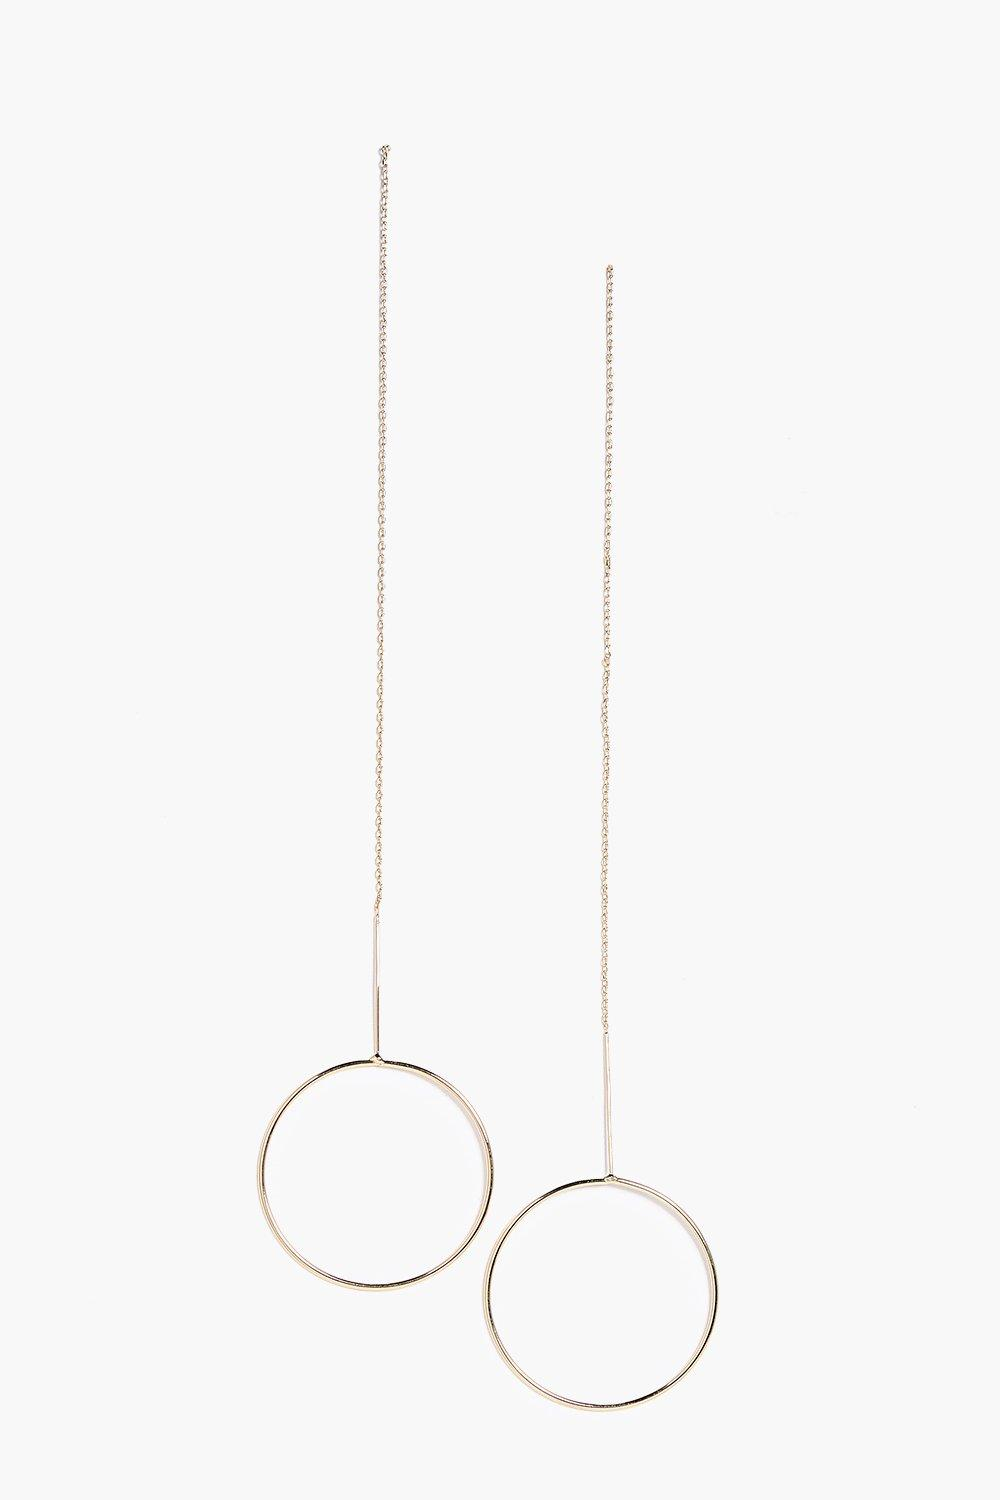 Phoebe Long Chain Circle Earring